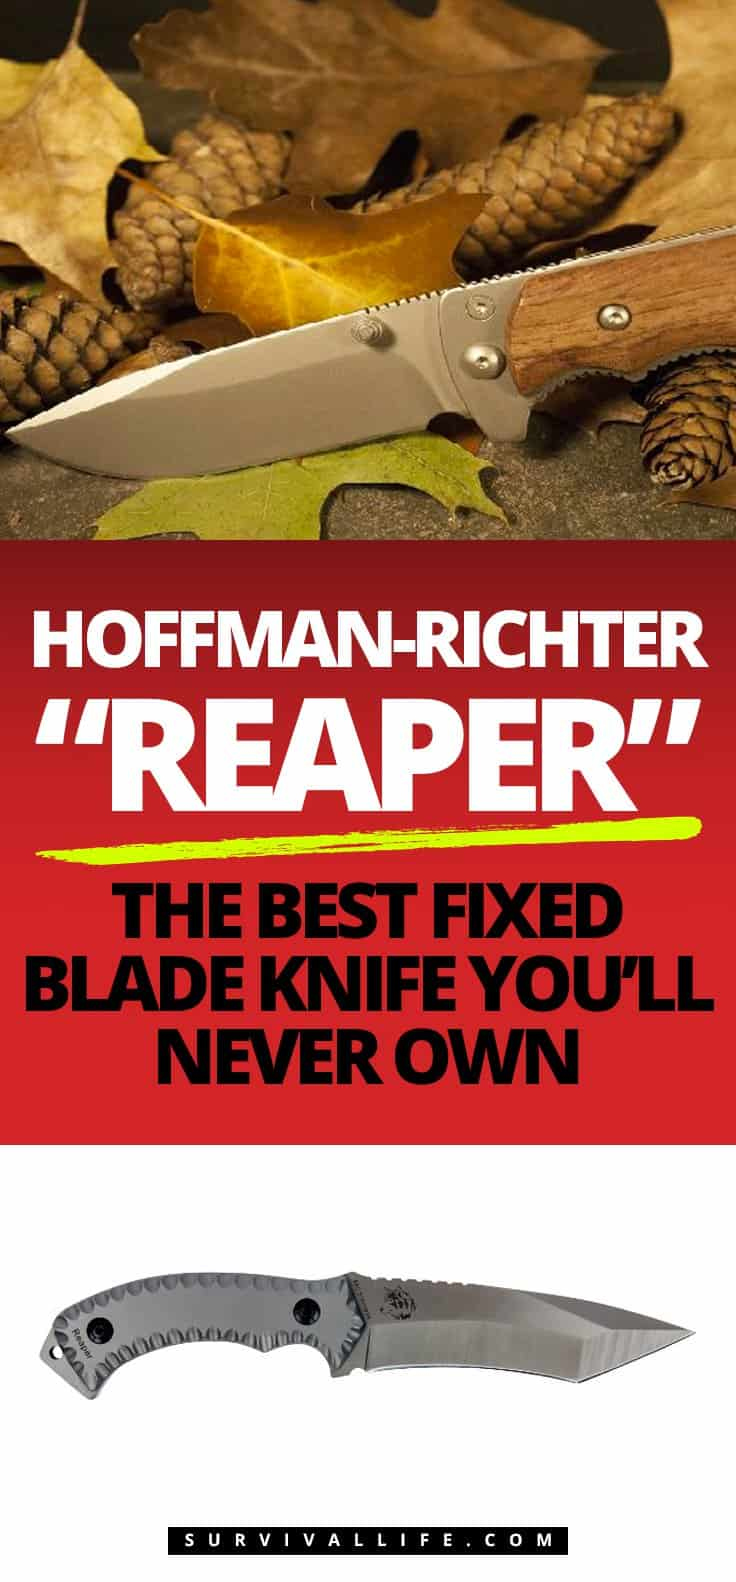 "Hoffman-Richter ""Reaper"": The Best Fixed Blade Knife You'll Never Own"